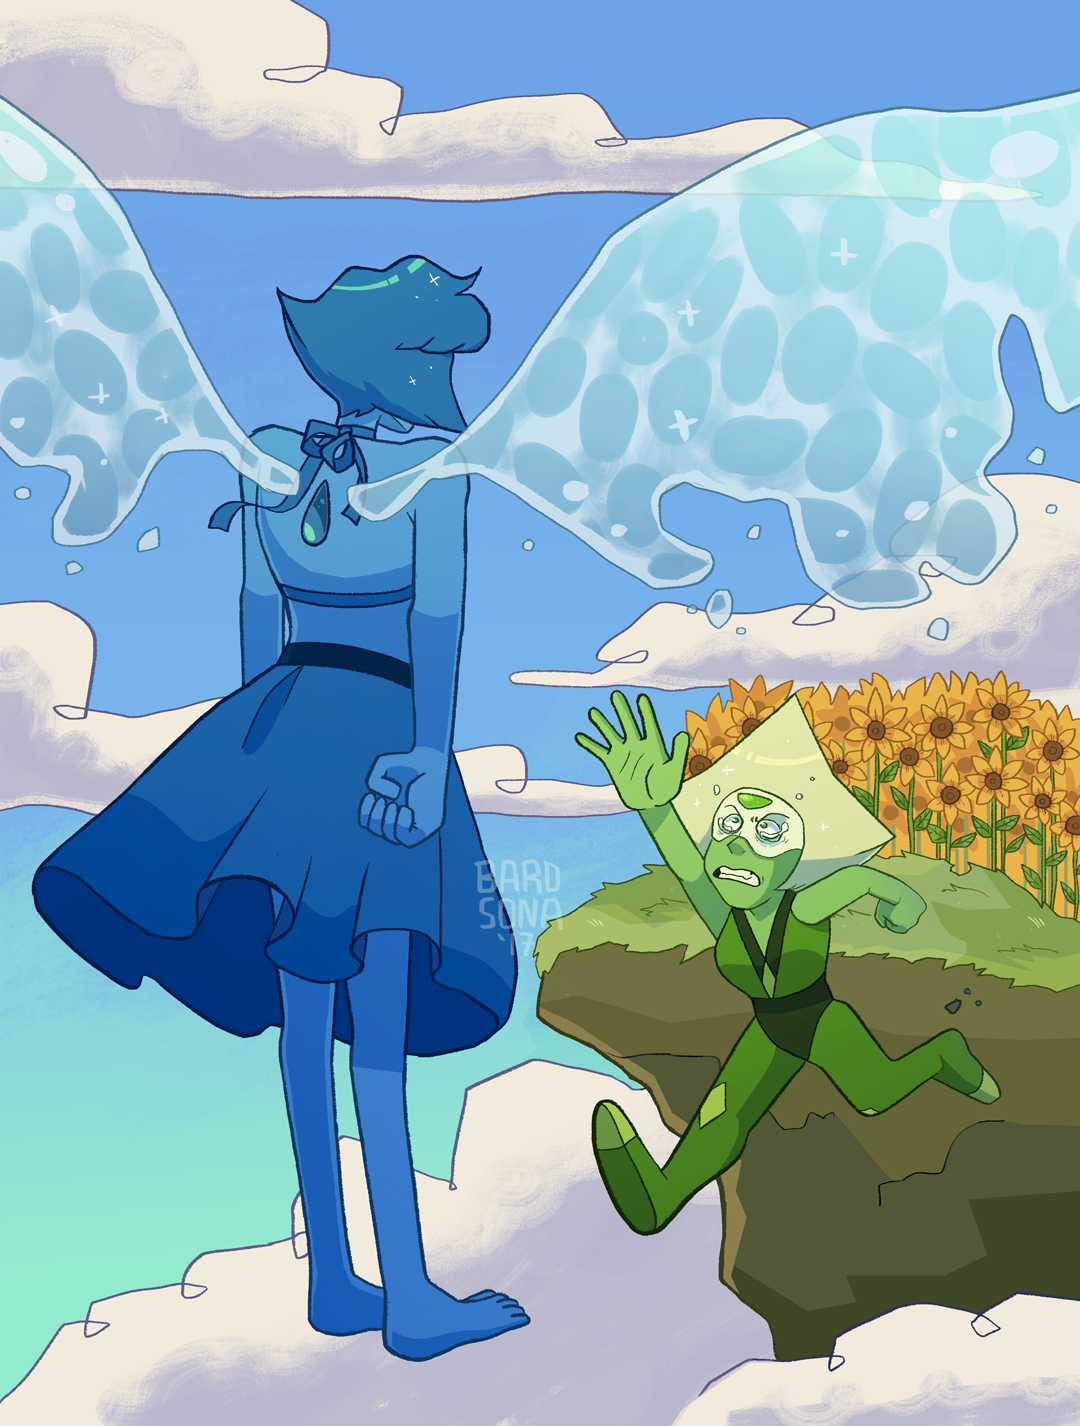 Been thinking a lot about Peridot, sunflowers, and Mother 3 imagery